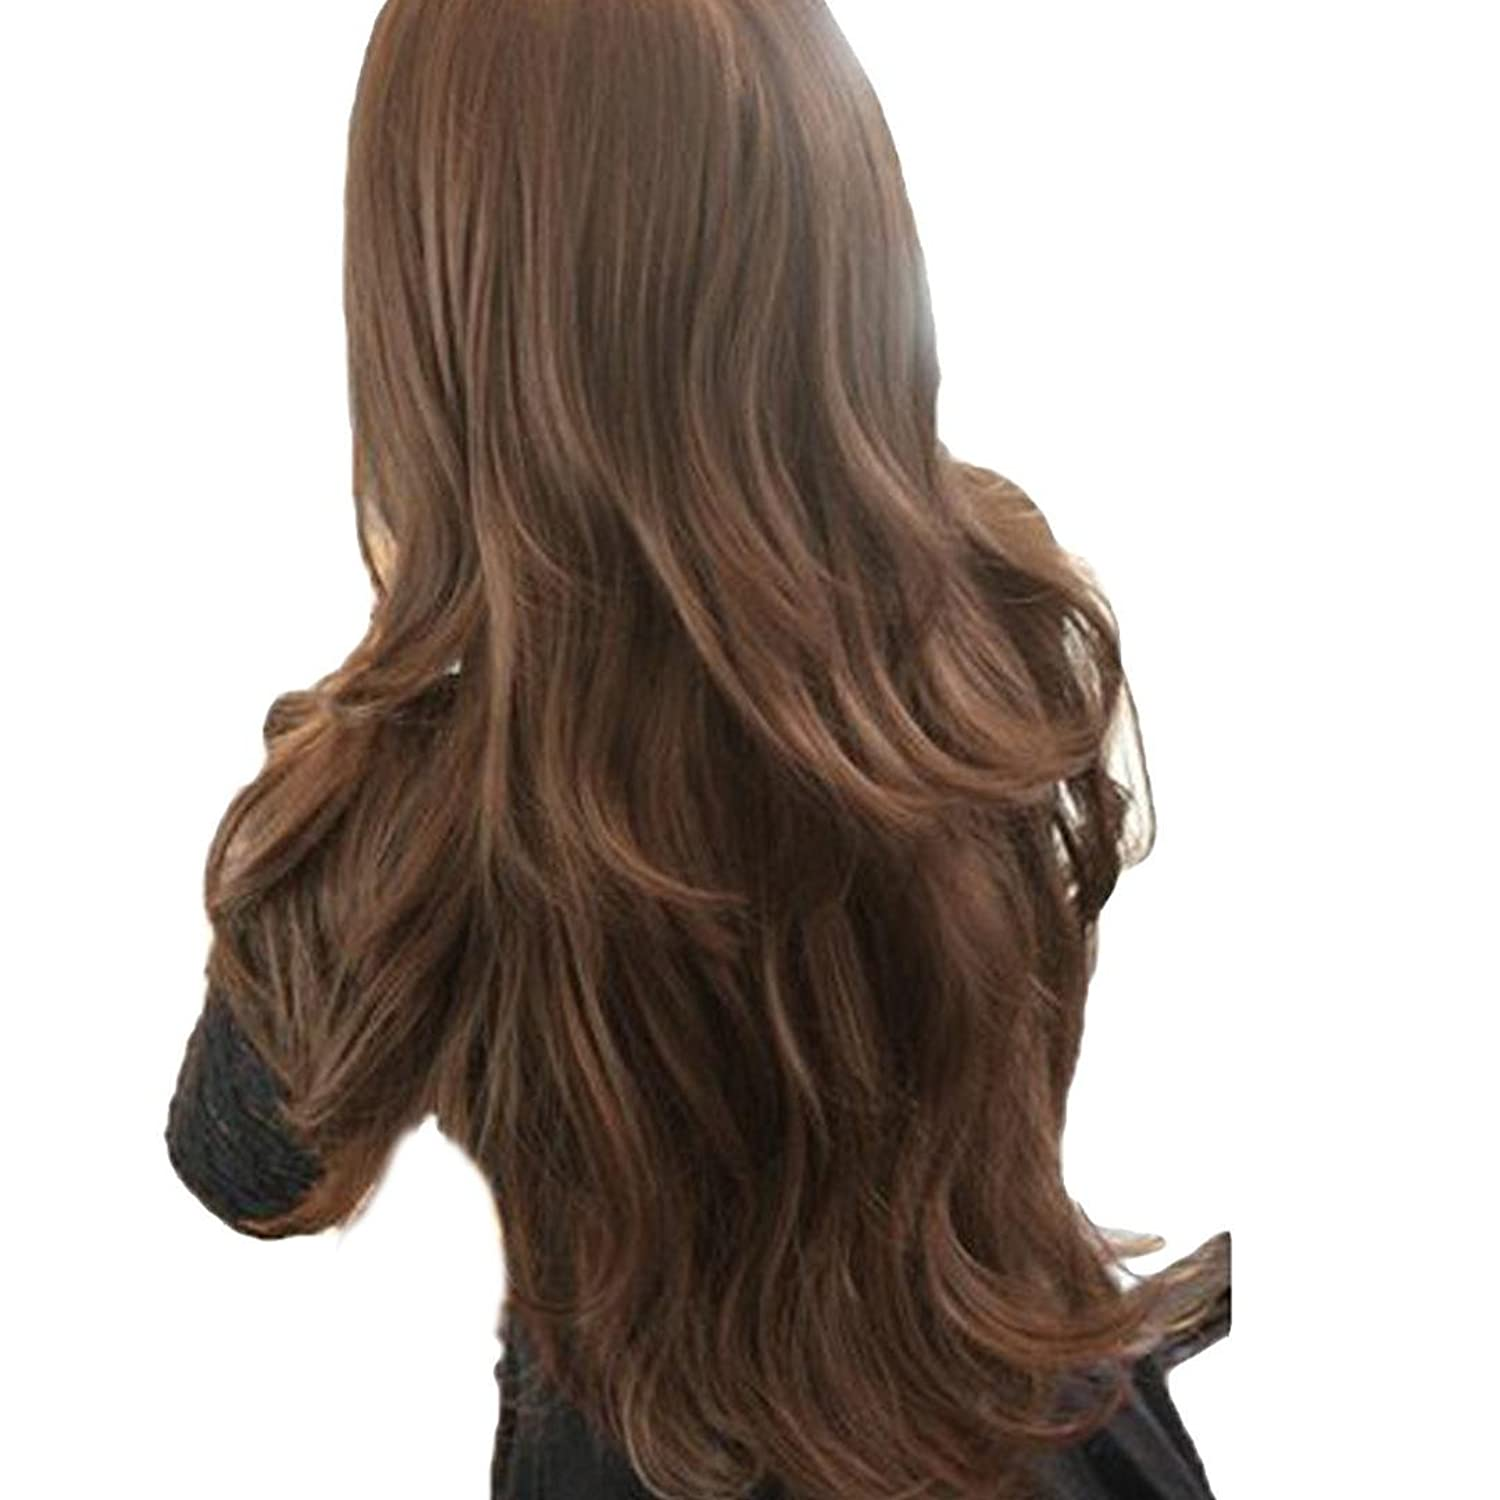 DDLBiz Womens Girls Fashion Long hair wig with wavy curly hair + Hairnet